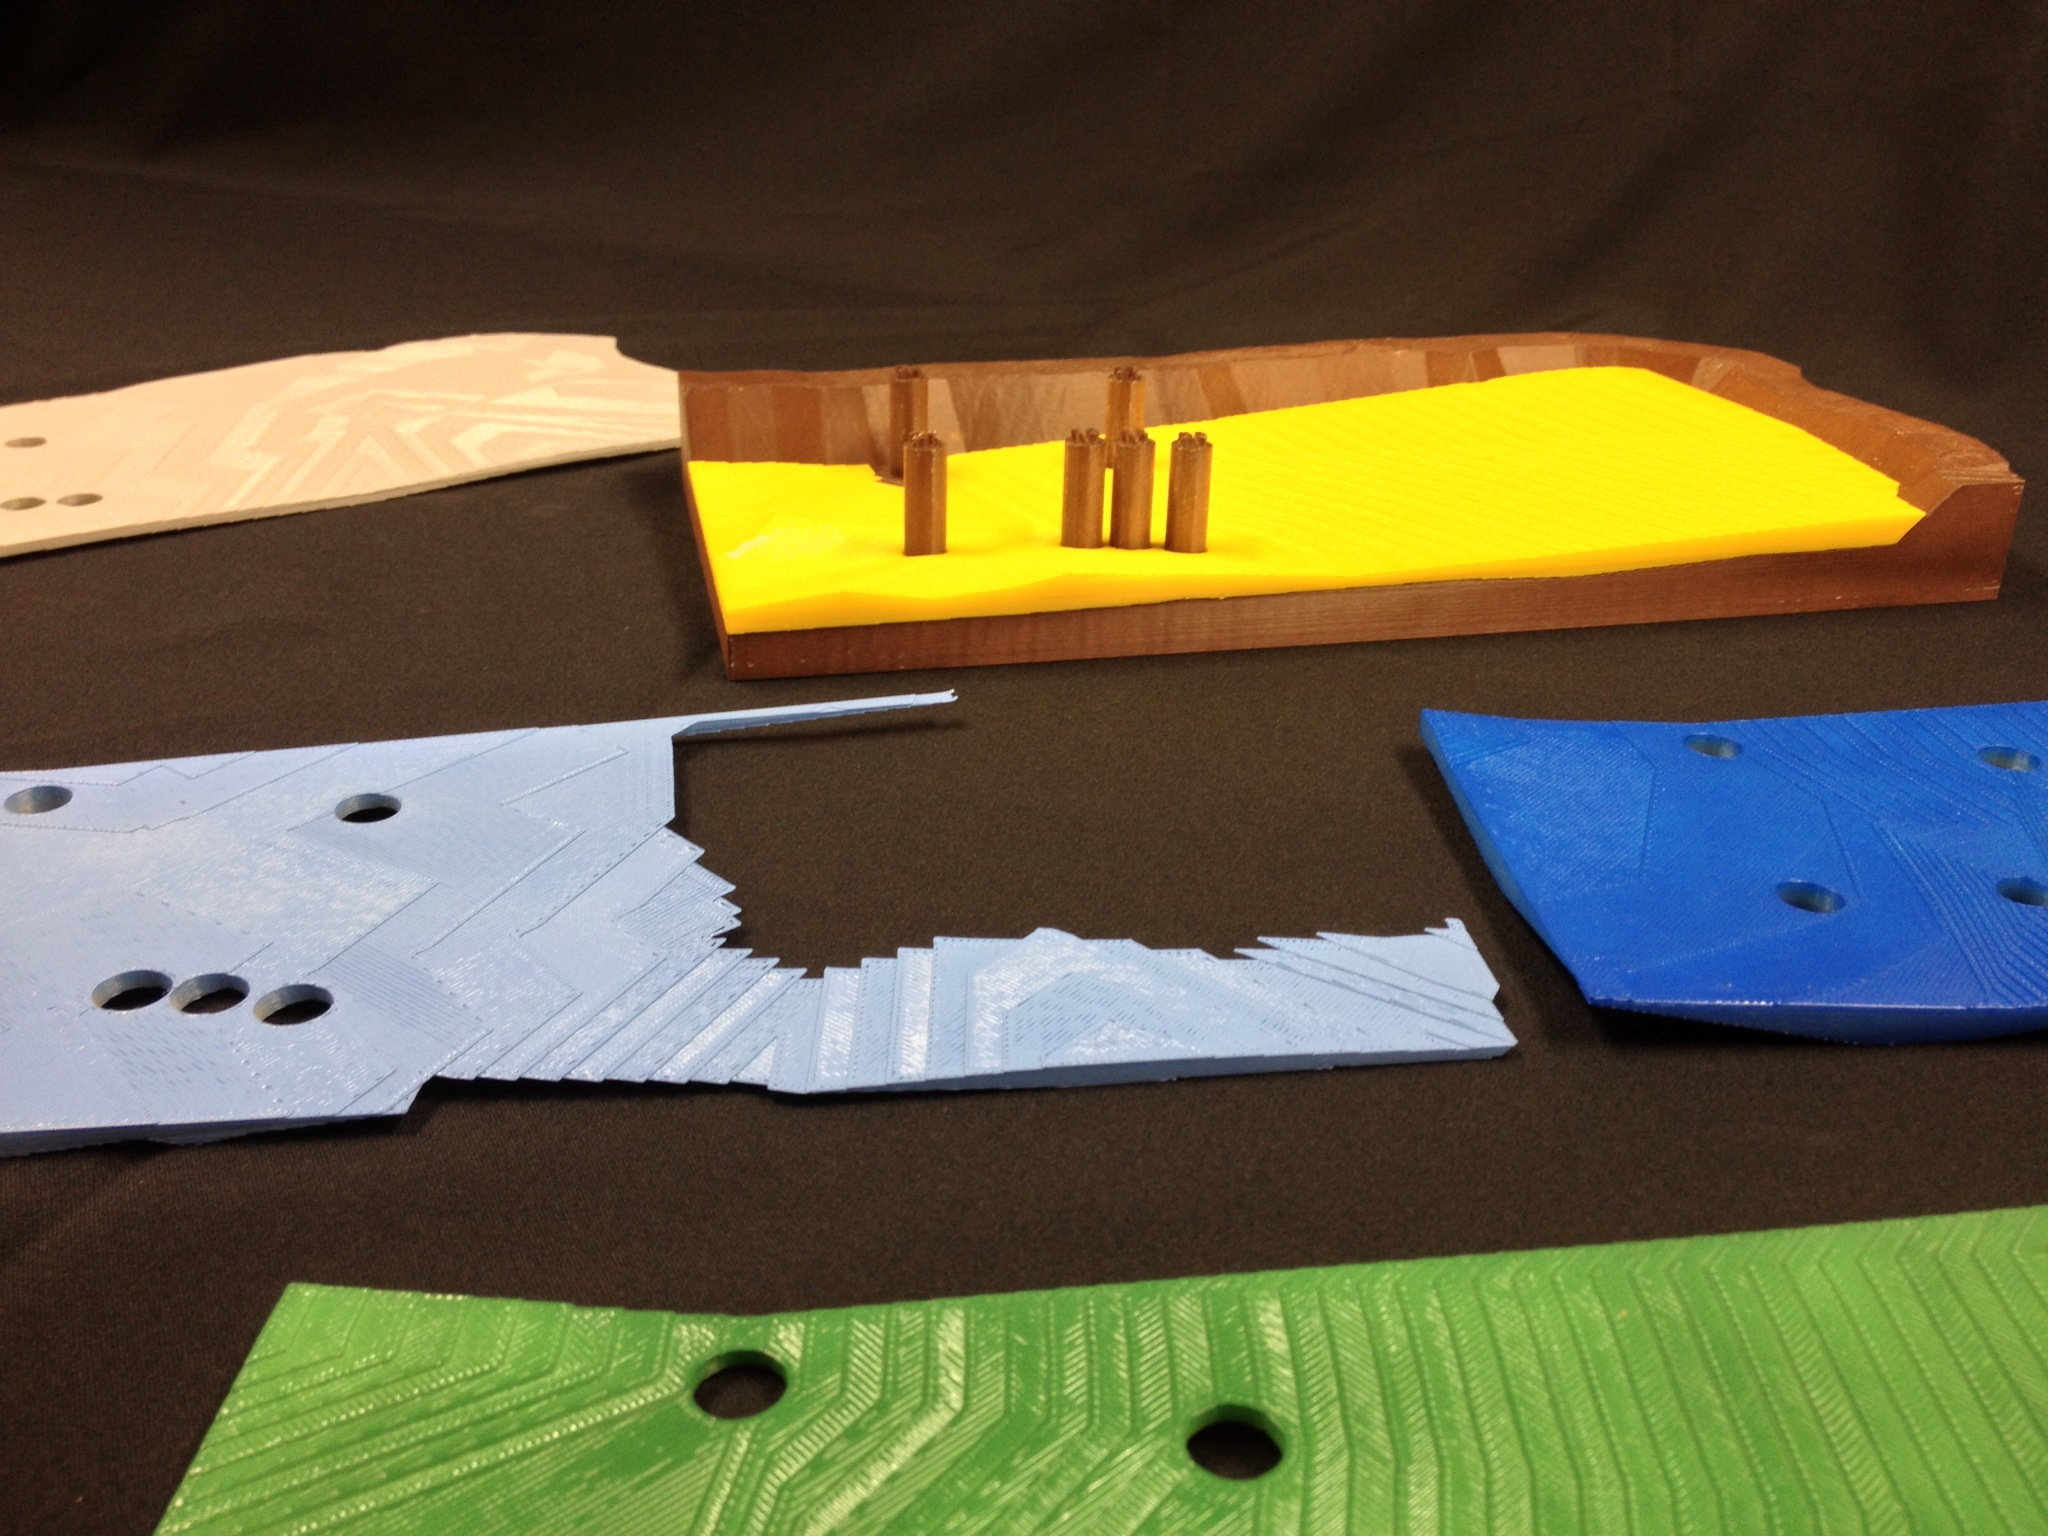 3D Printed Iron Pit - Sectioned